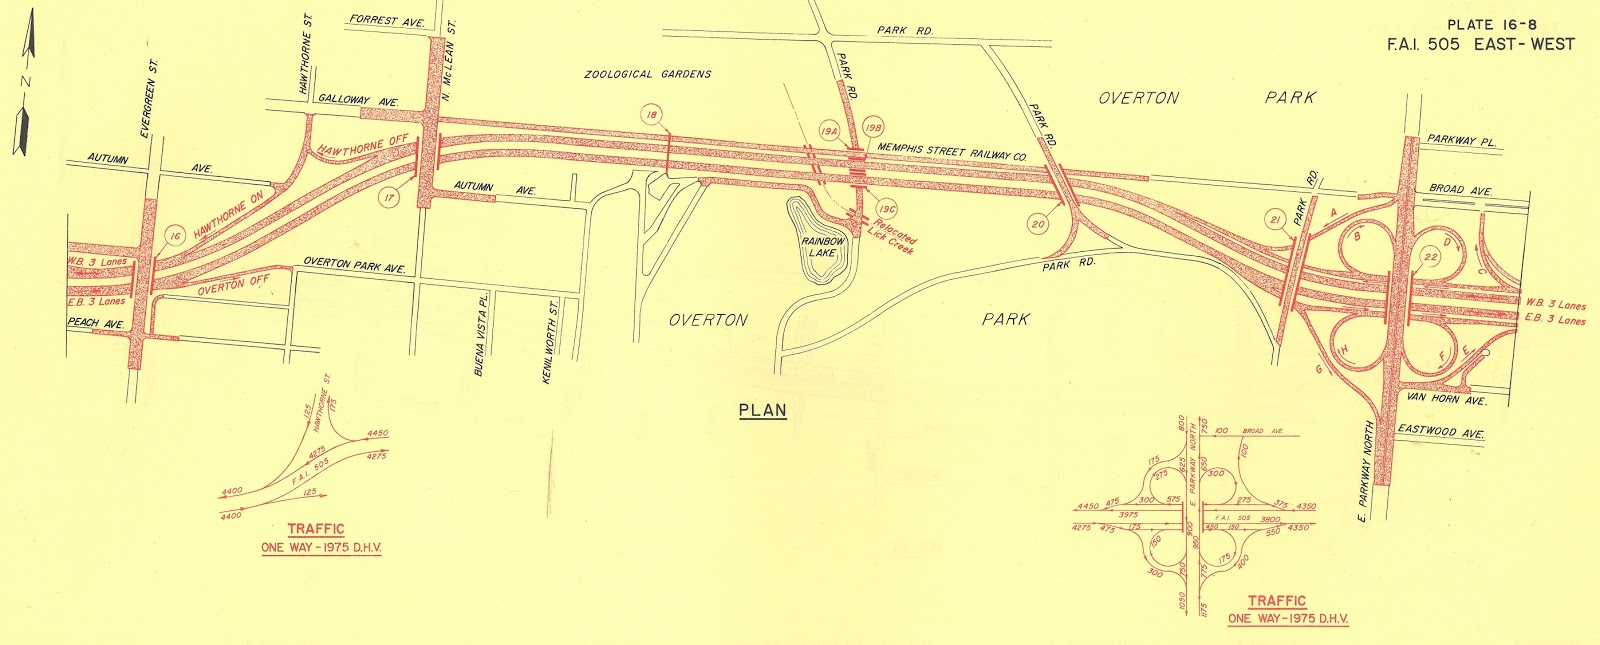 the original proposal for interstate 40 through overton park called for a full cloverleaf interchange at east parkway on the east side of the park